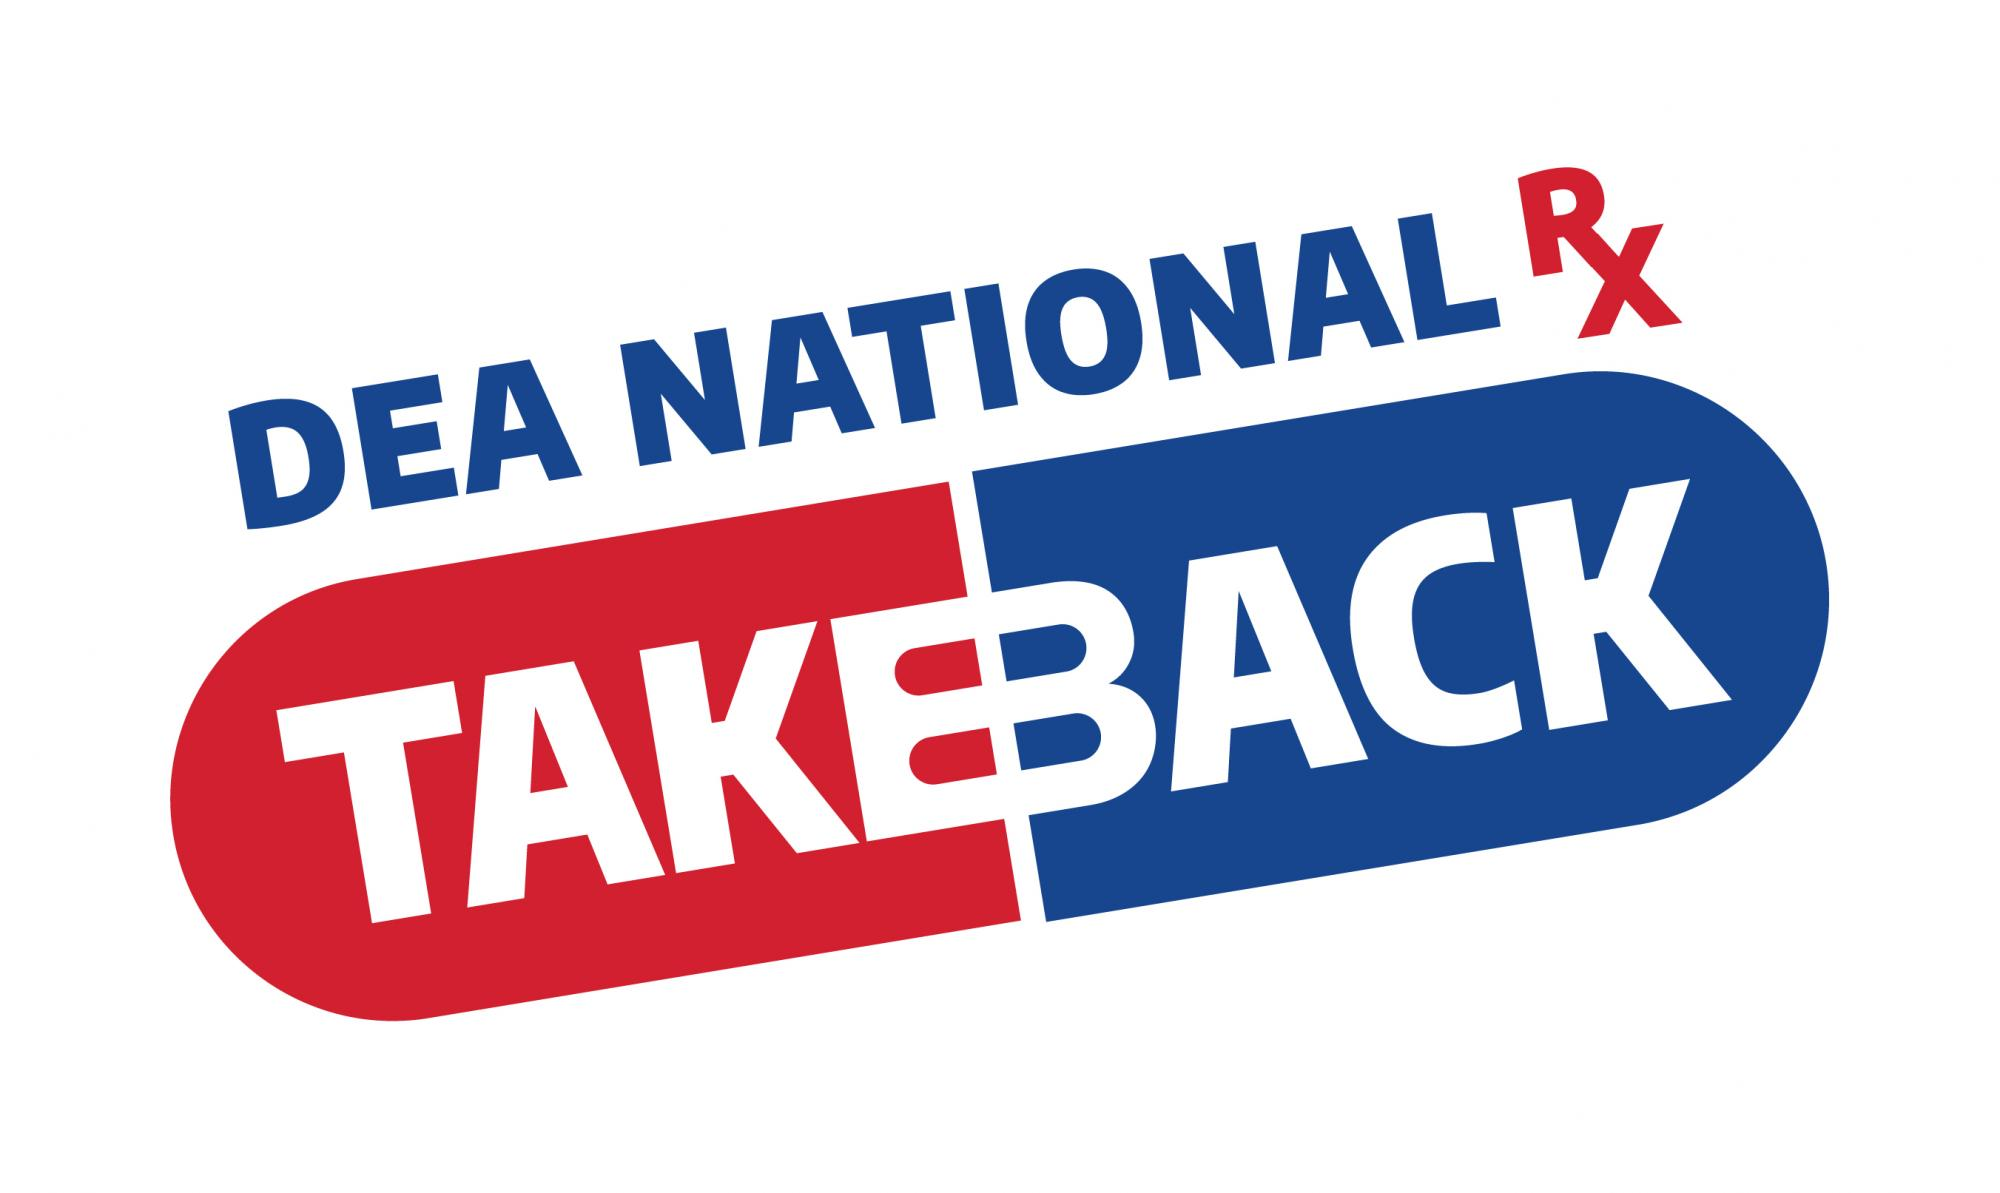 take back program